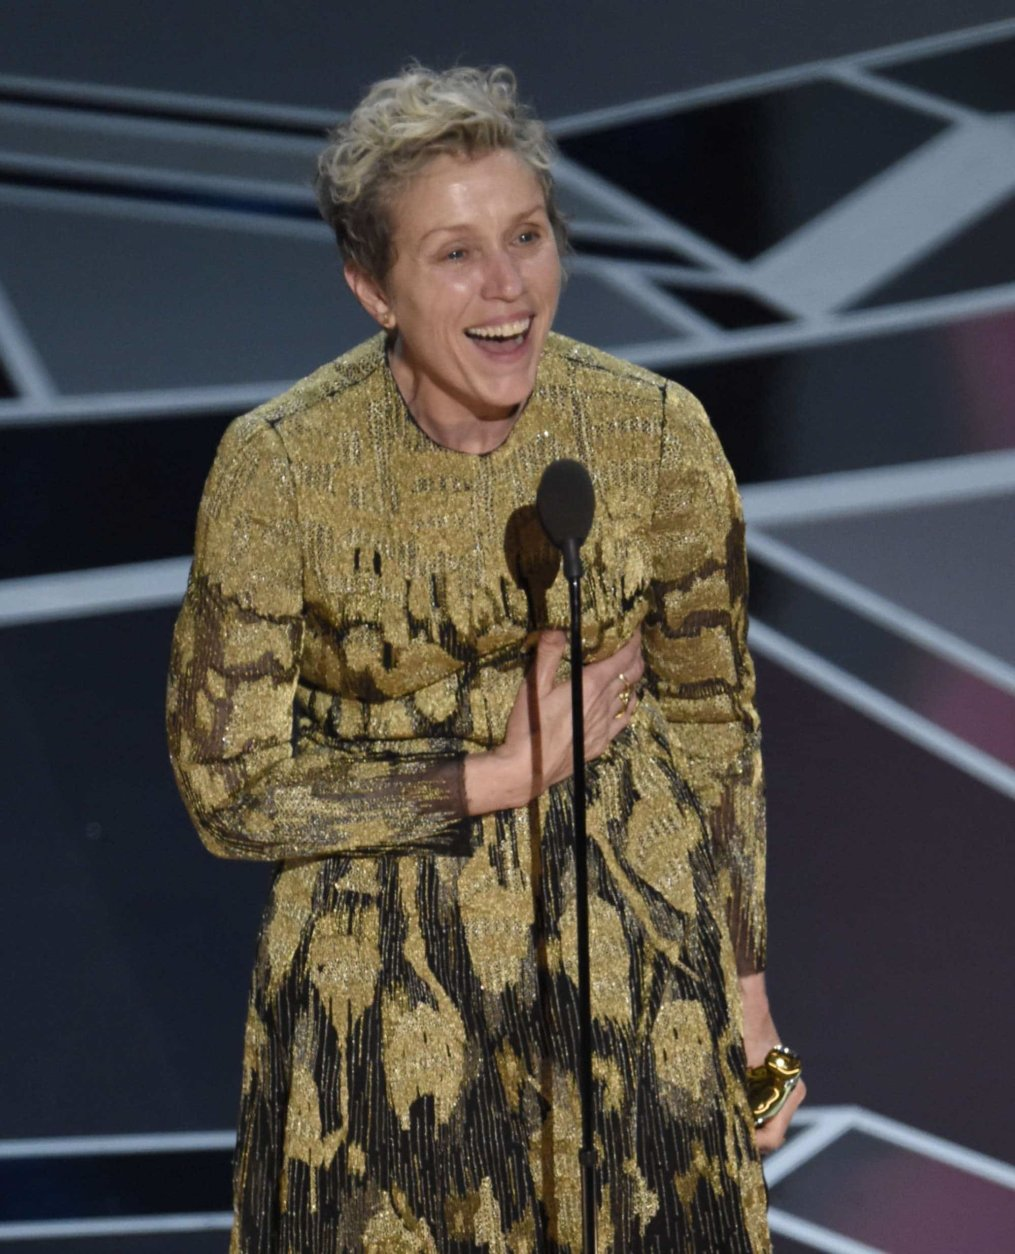 """Frances McDormand accepts the award for best performance by an actress in a leading role for """"Three Billboards Outside Ebbing, Missouri"""" at the Oscars on Sunday, March 4, 2018, at the Dolby Theatre in Los Angeles. (Photo by Chris Pizzello/Invision/AP)"""